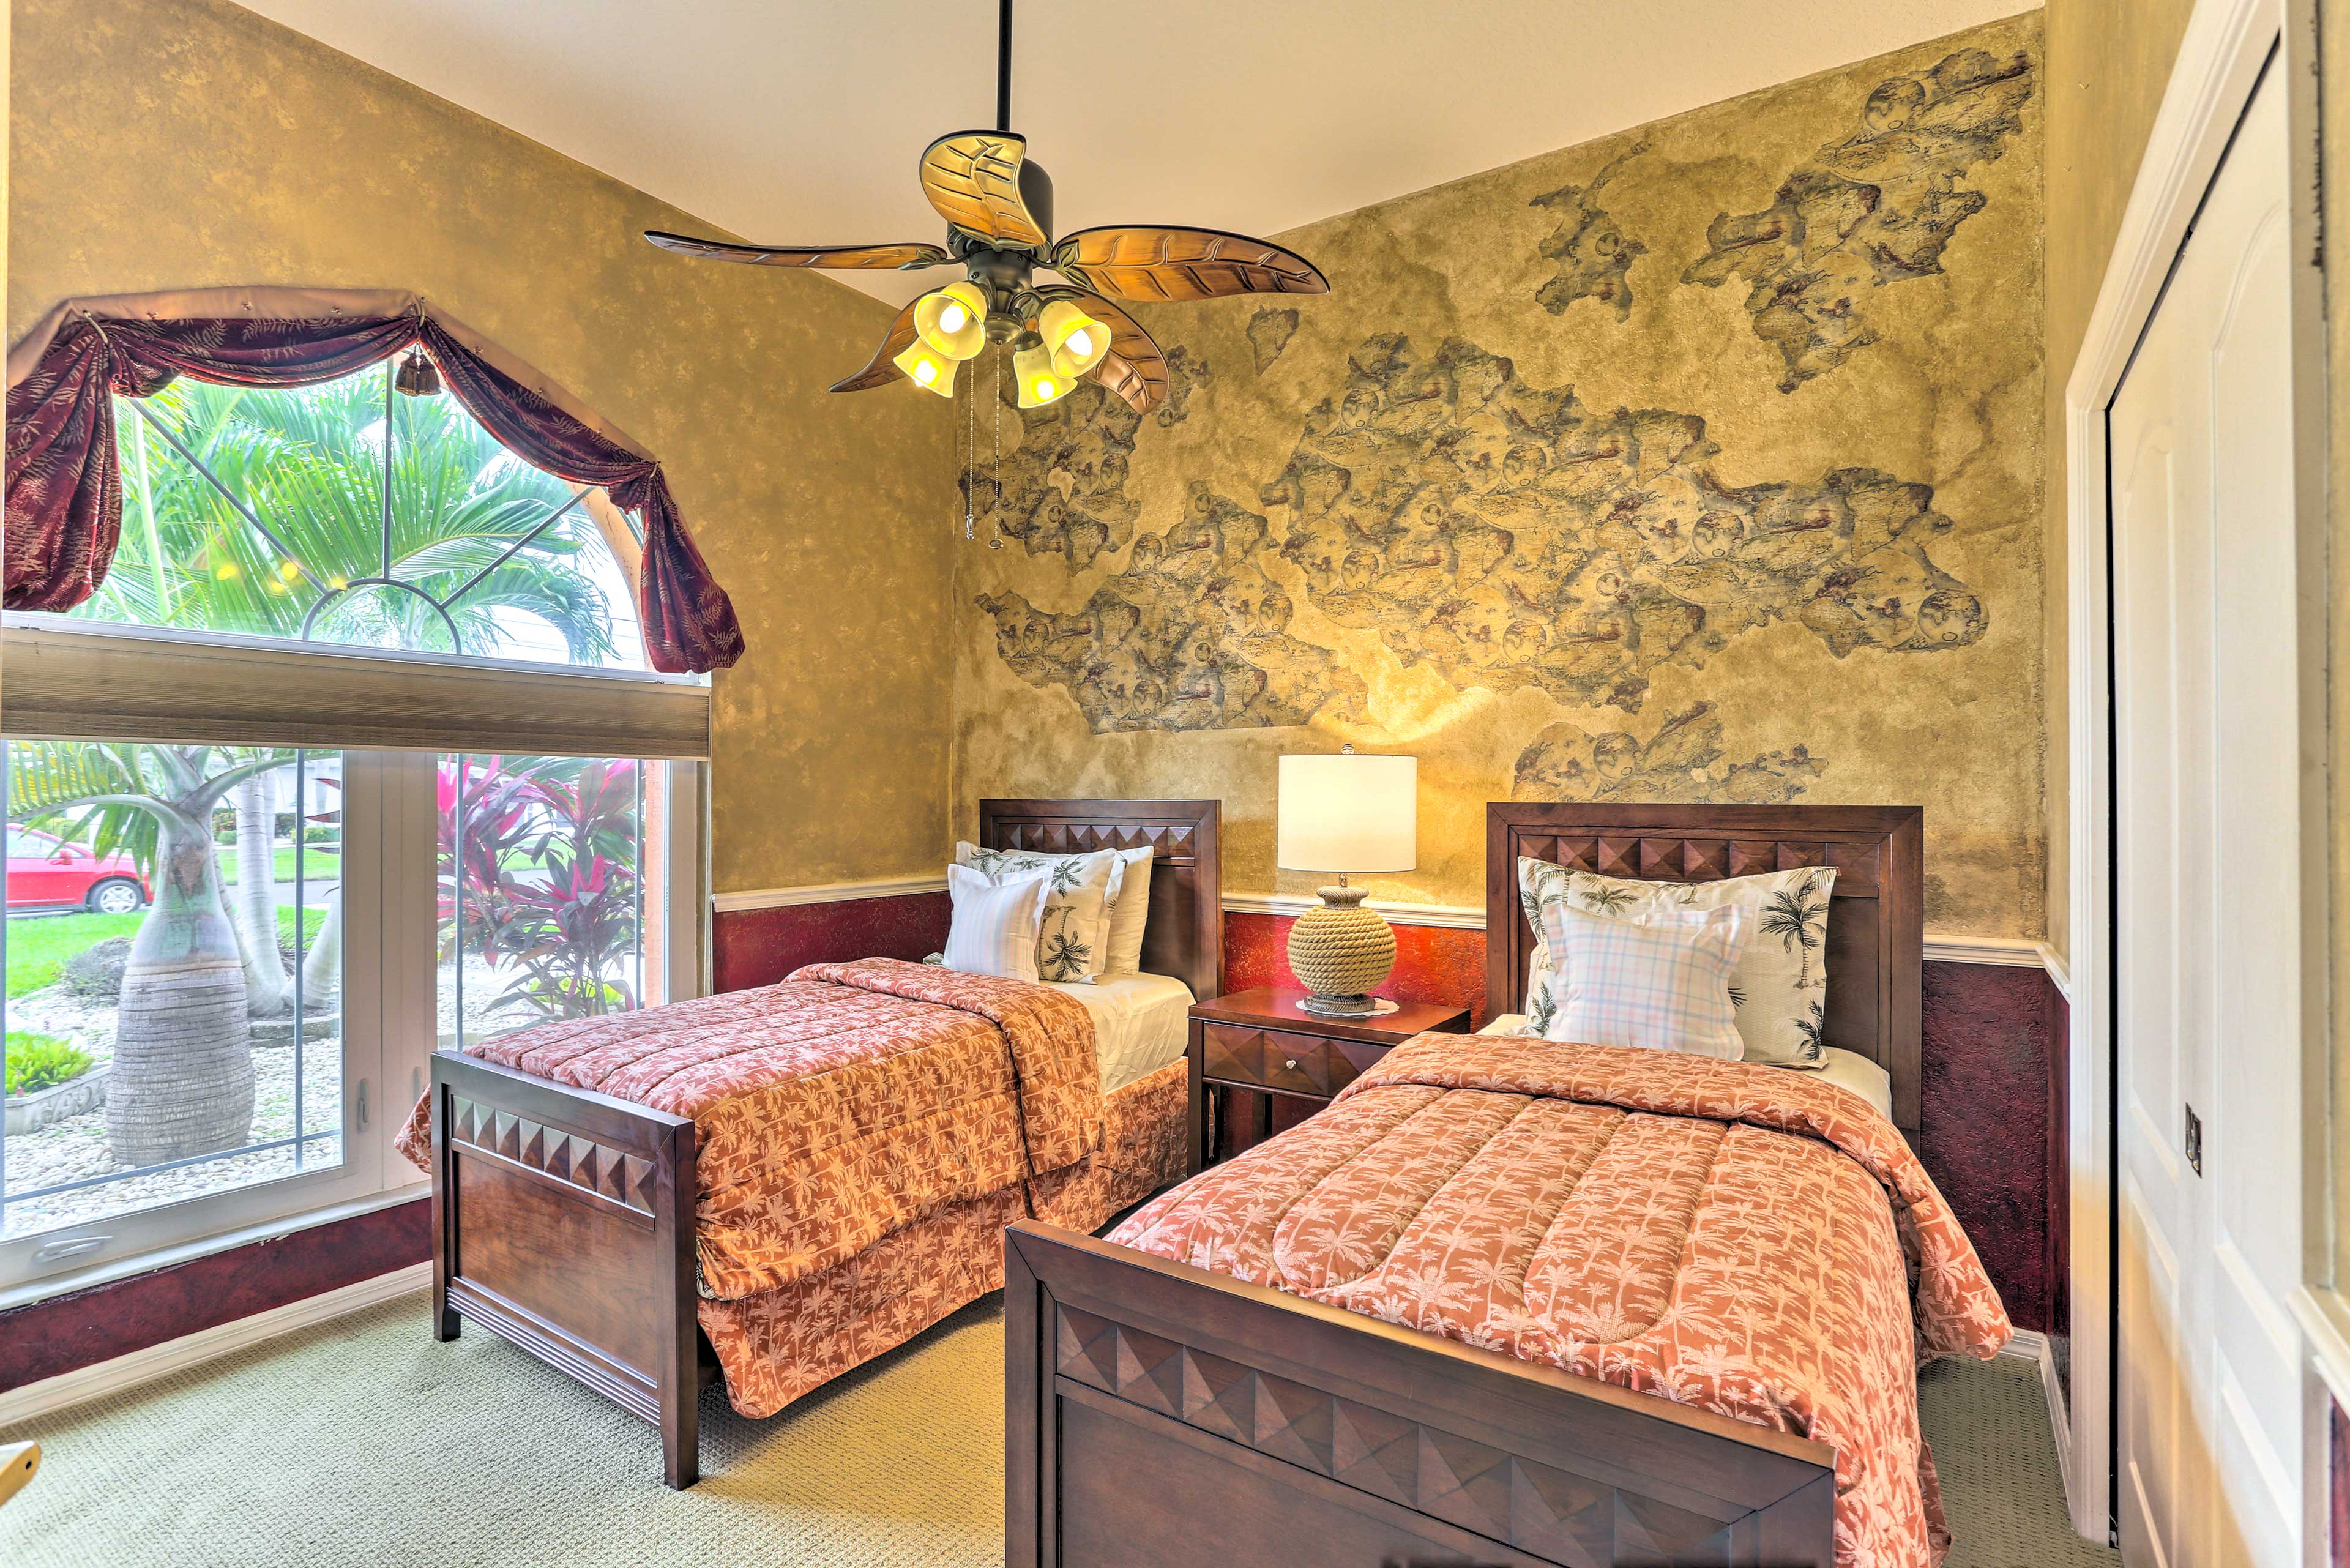 Drift into a peaceful sleep in one of the 2 twin beds.